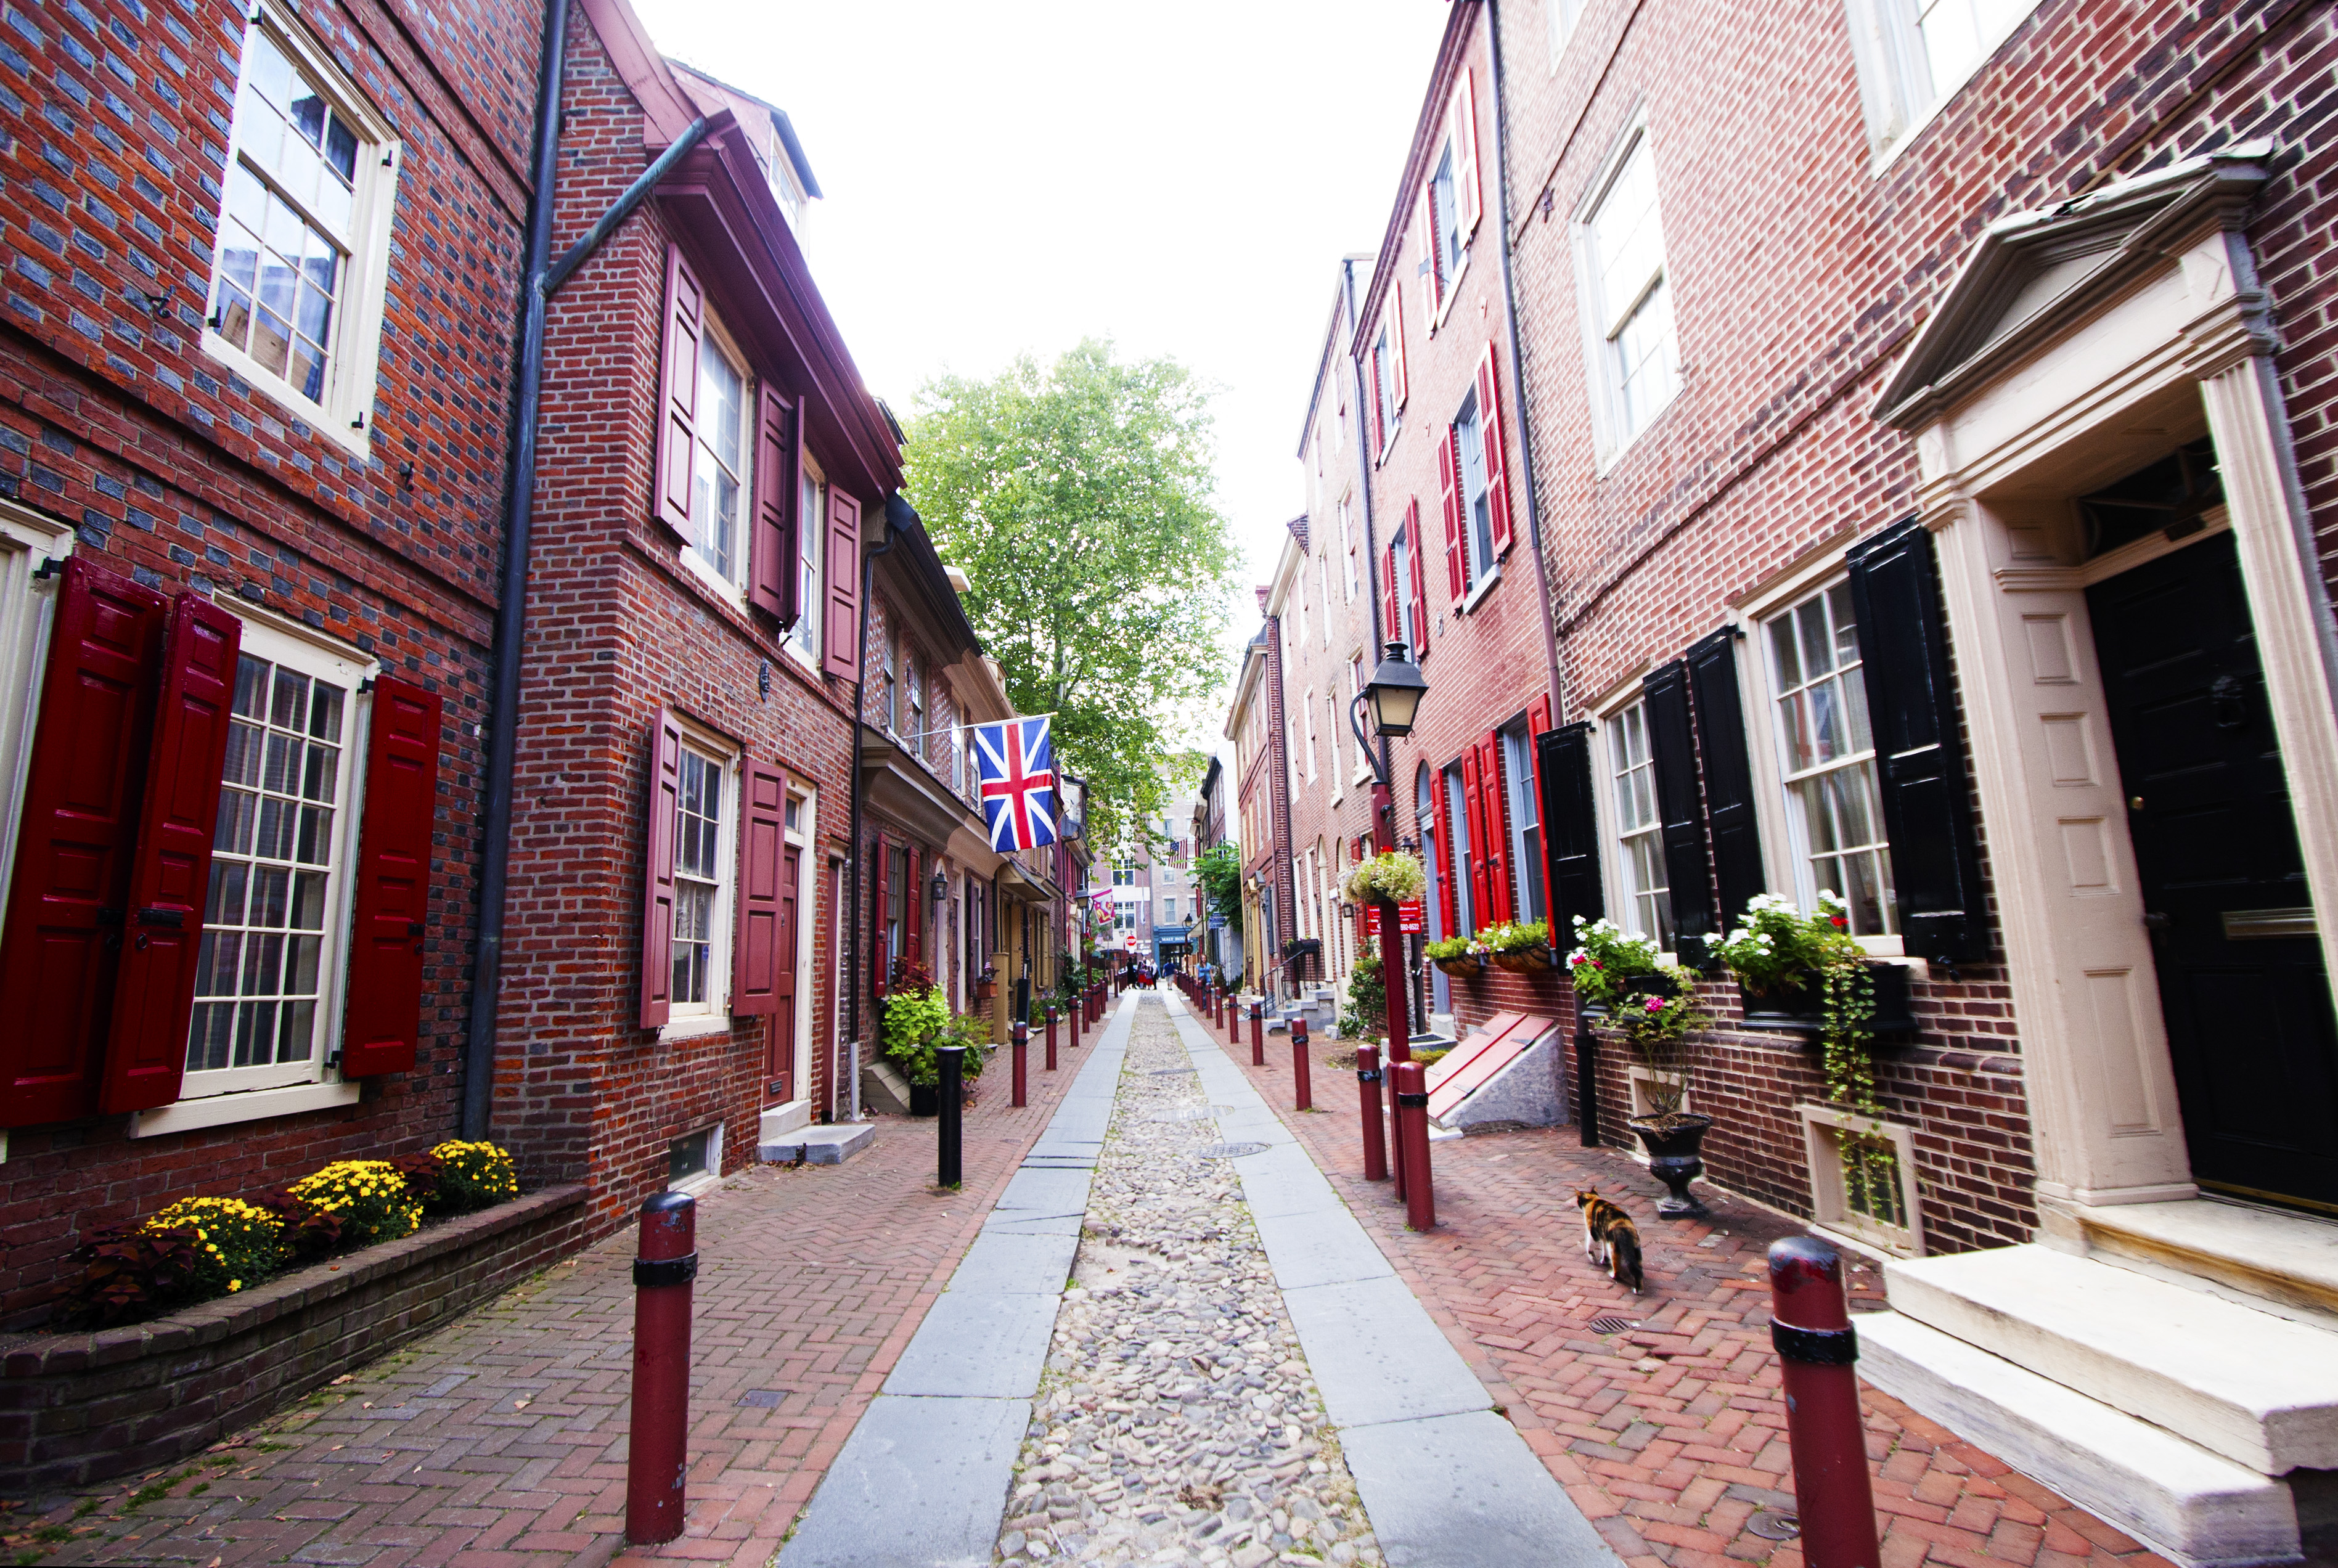 The 5 most beautiful streets in Philly - Curbed Philly